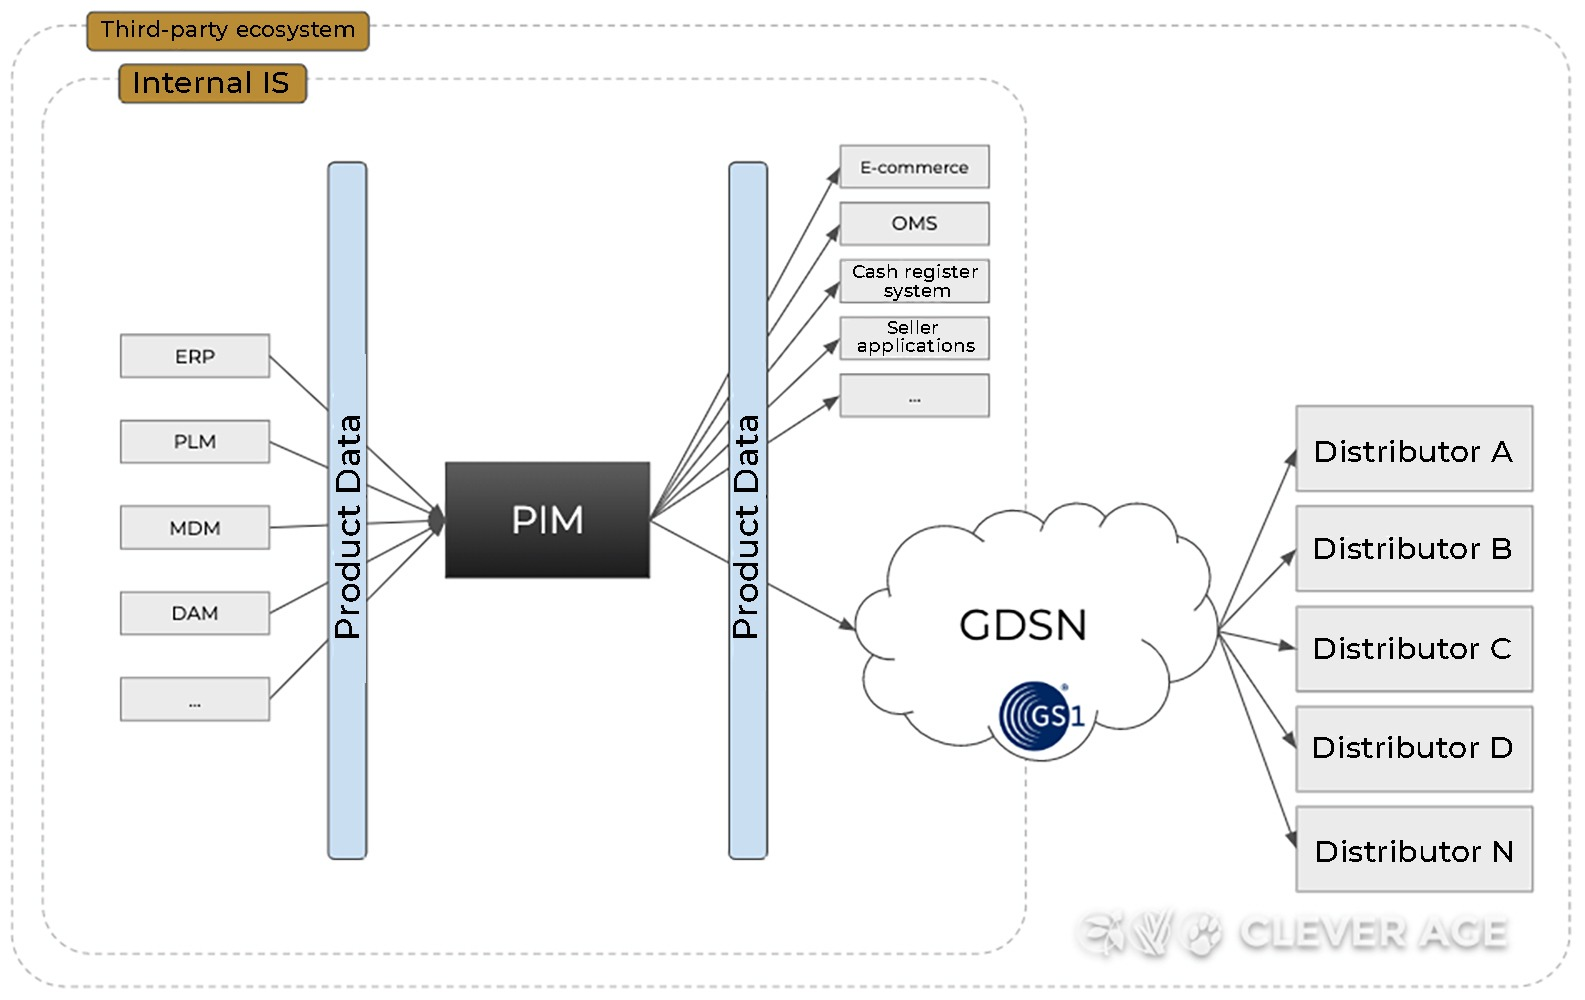 Architecture with multiple third-party flows via GDSN (supplier view)